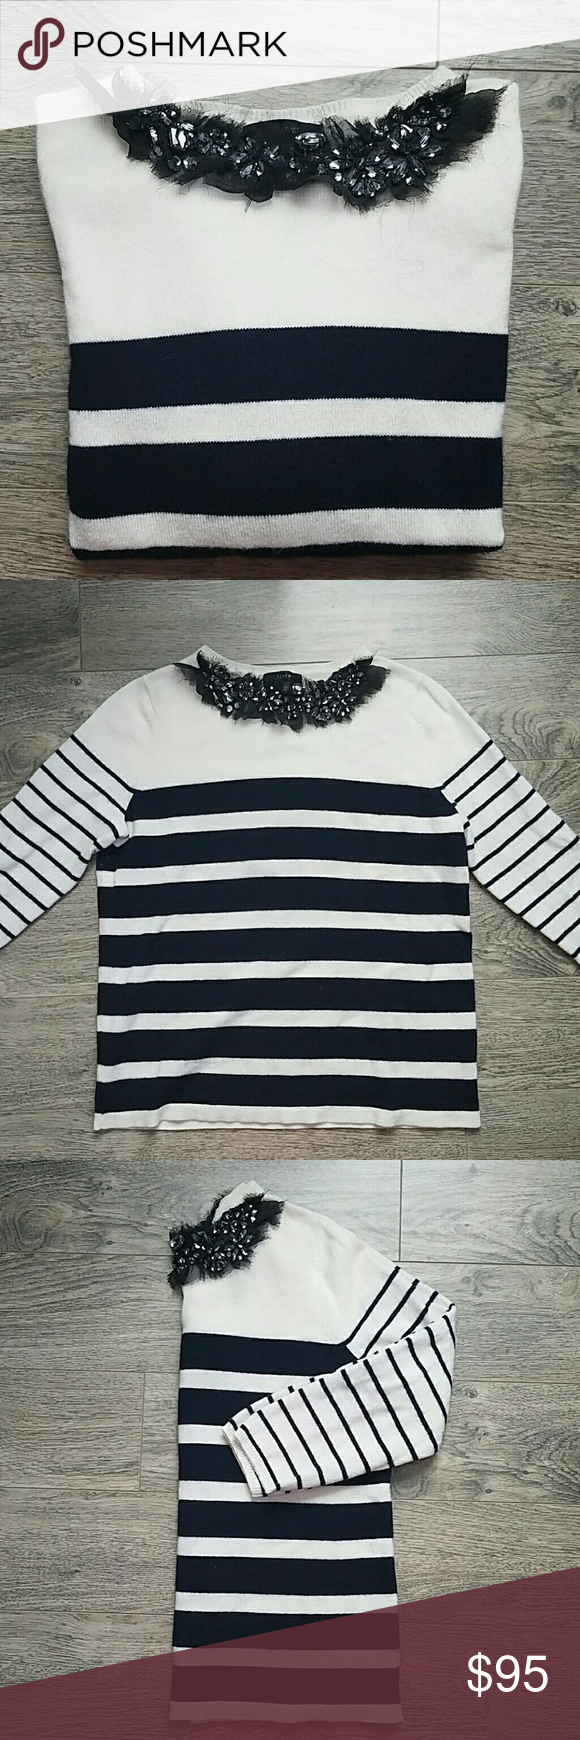 Jcrew cashmere sweater Striped and jeweled collar, great condition jcrew Sweaters Crew & Scoop Necks